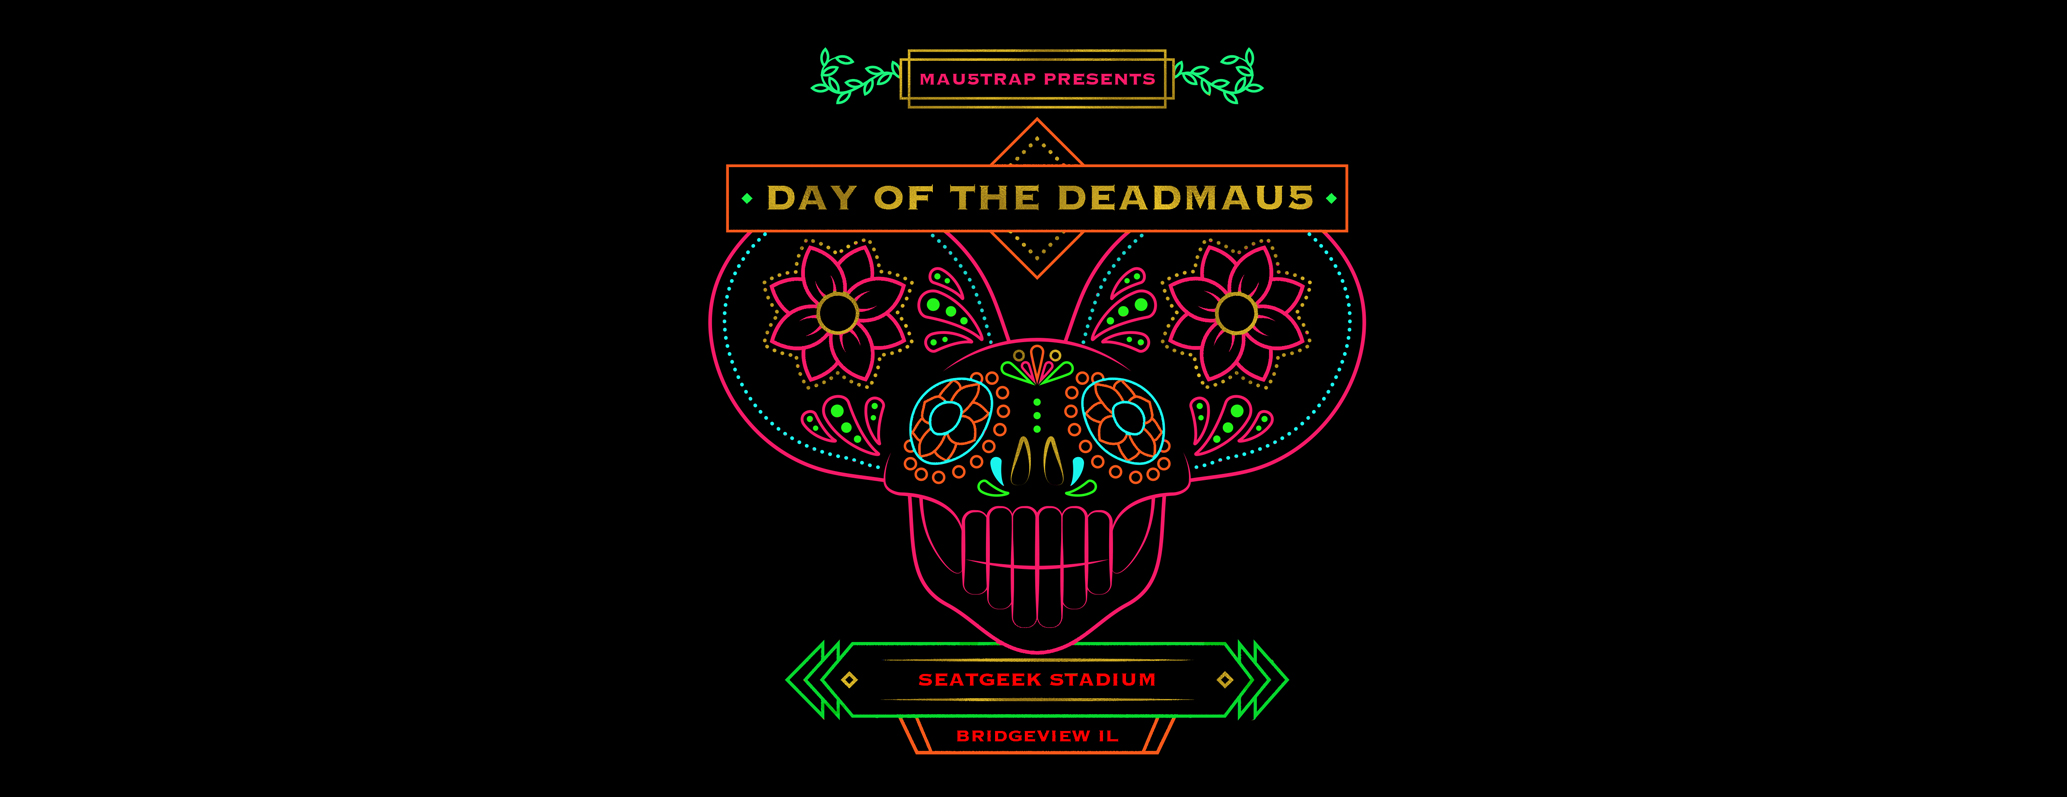 Deadmau5 - The Day Of The Deadmau5